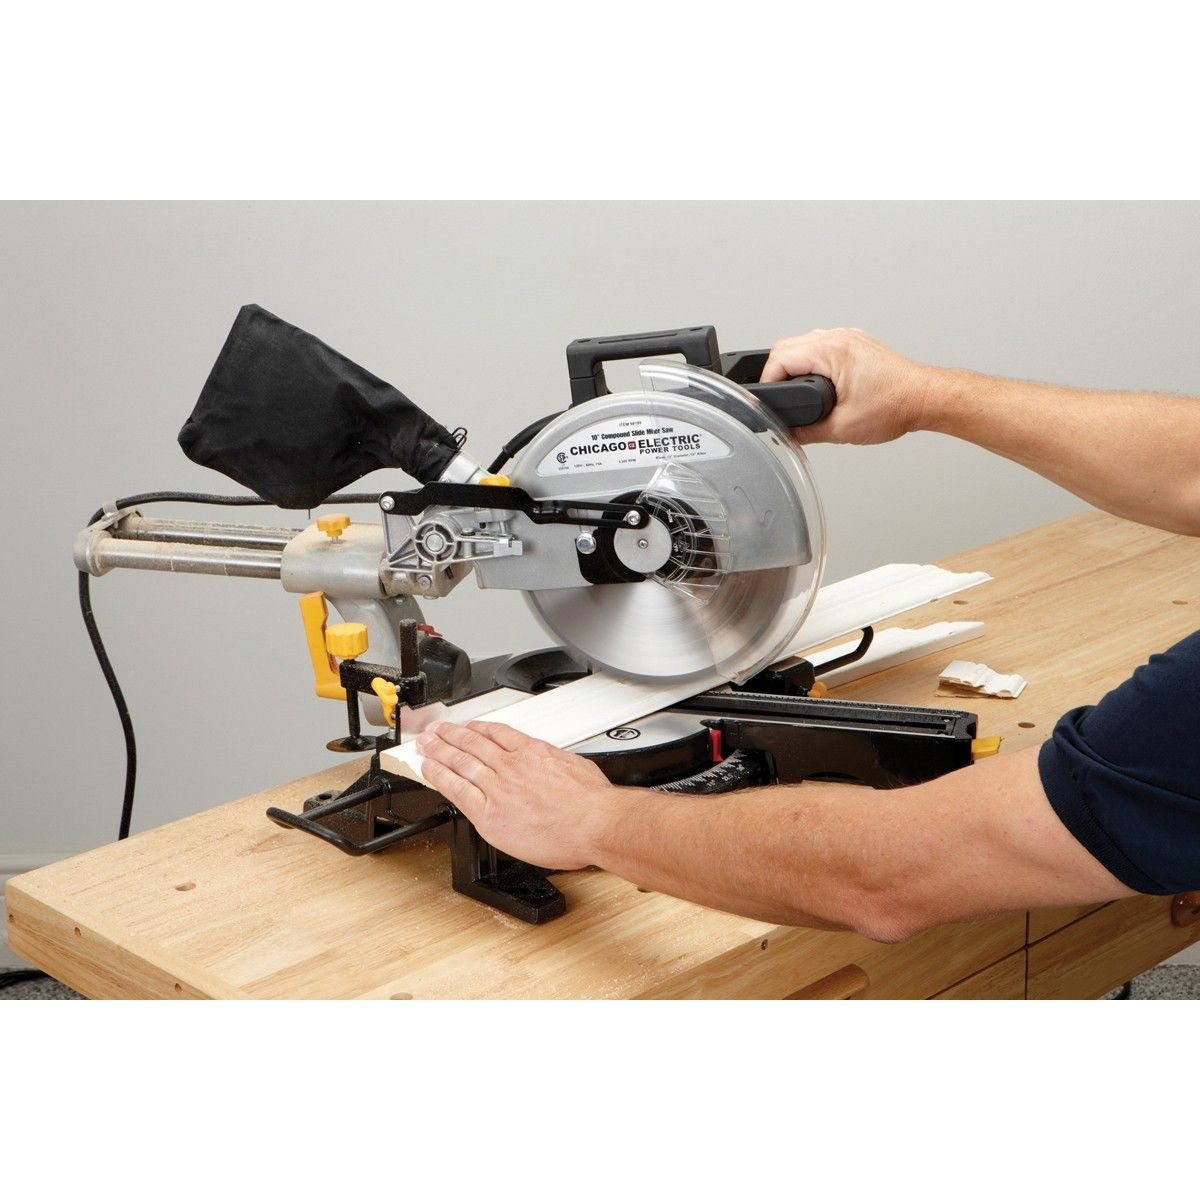 10 In Compound Miter Saw With Laser Guide System In 2020 Sliding Compound Miter Saw Compound Mitre Saw Miter Saw